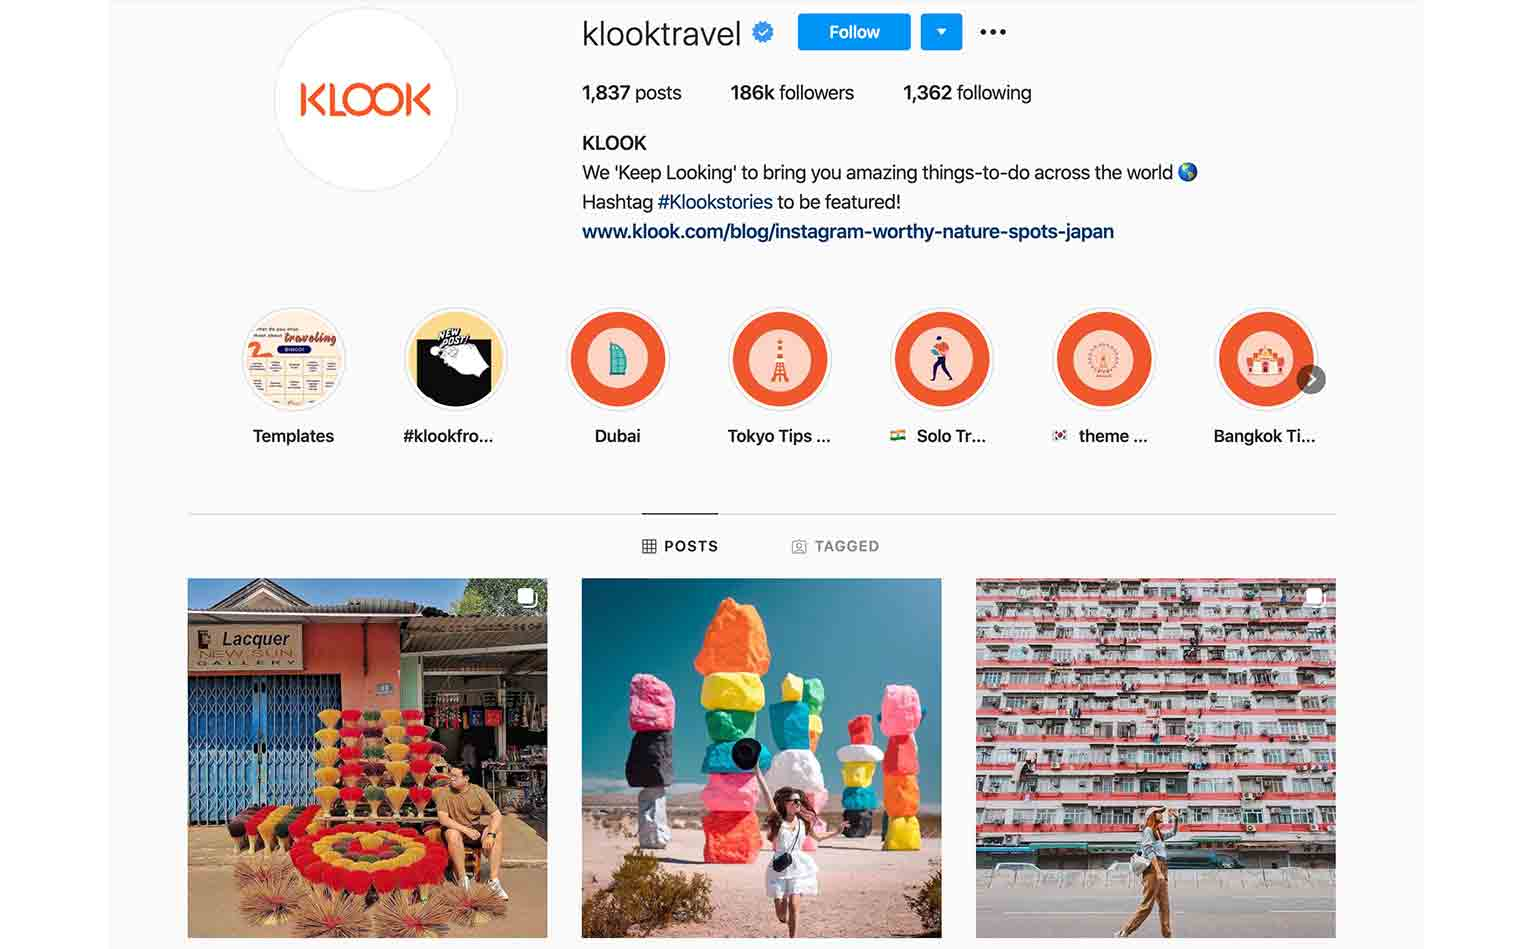 Klook amasses user-generated content through consumers on Instagram.